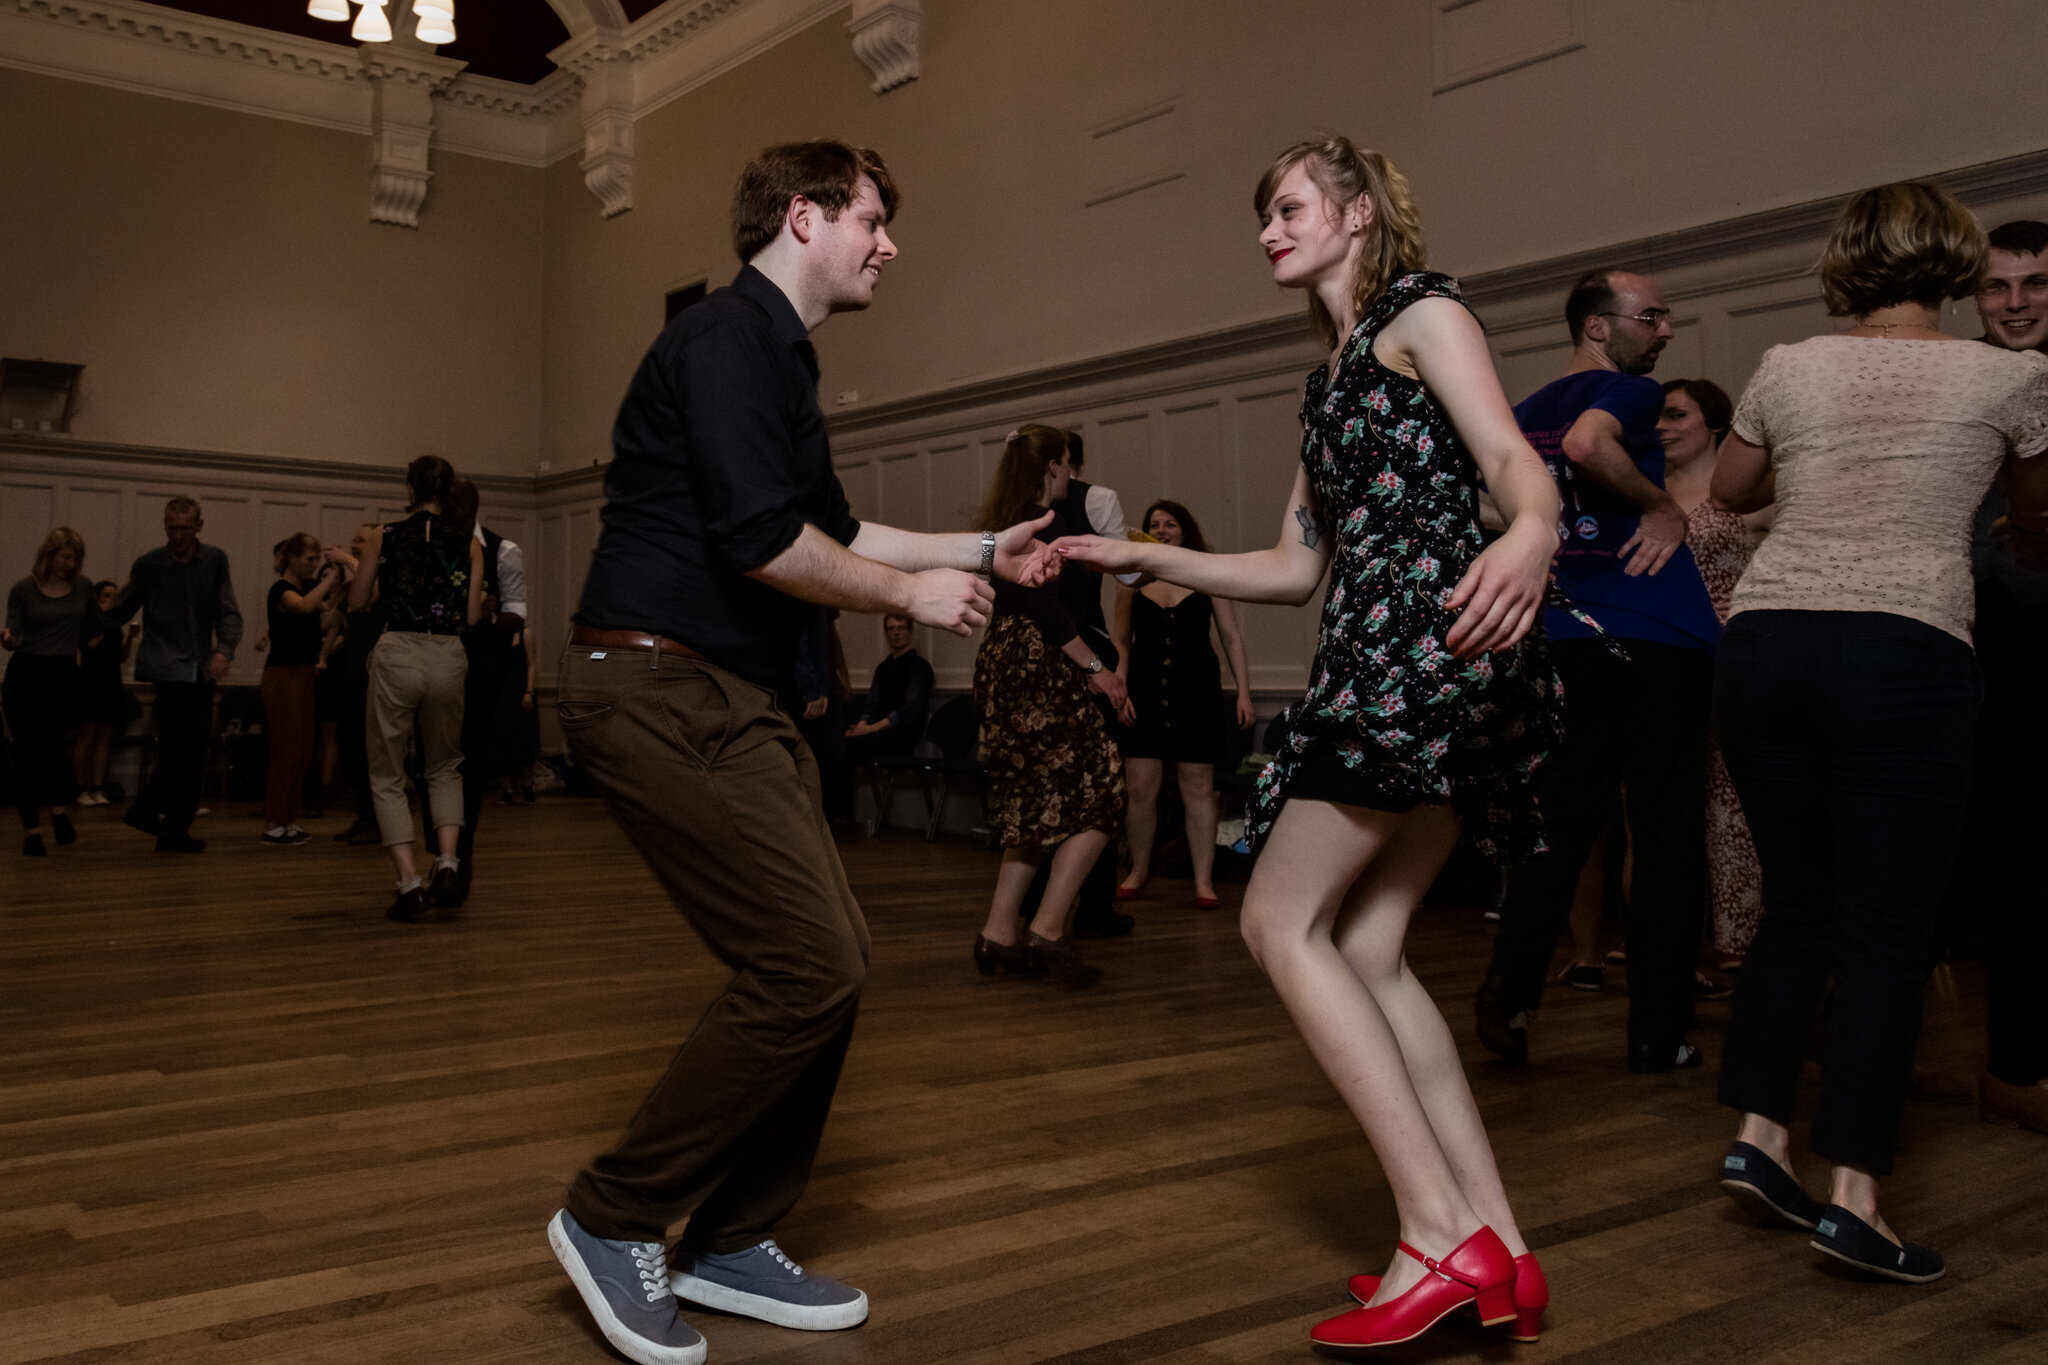 Edinbop Summerhall July 2019-465.jpg